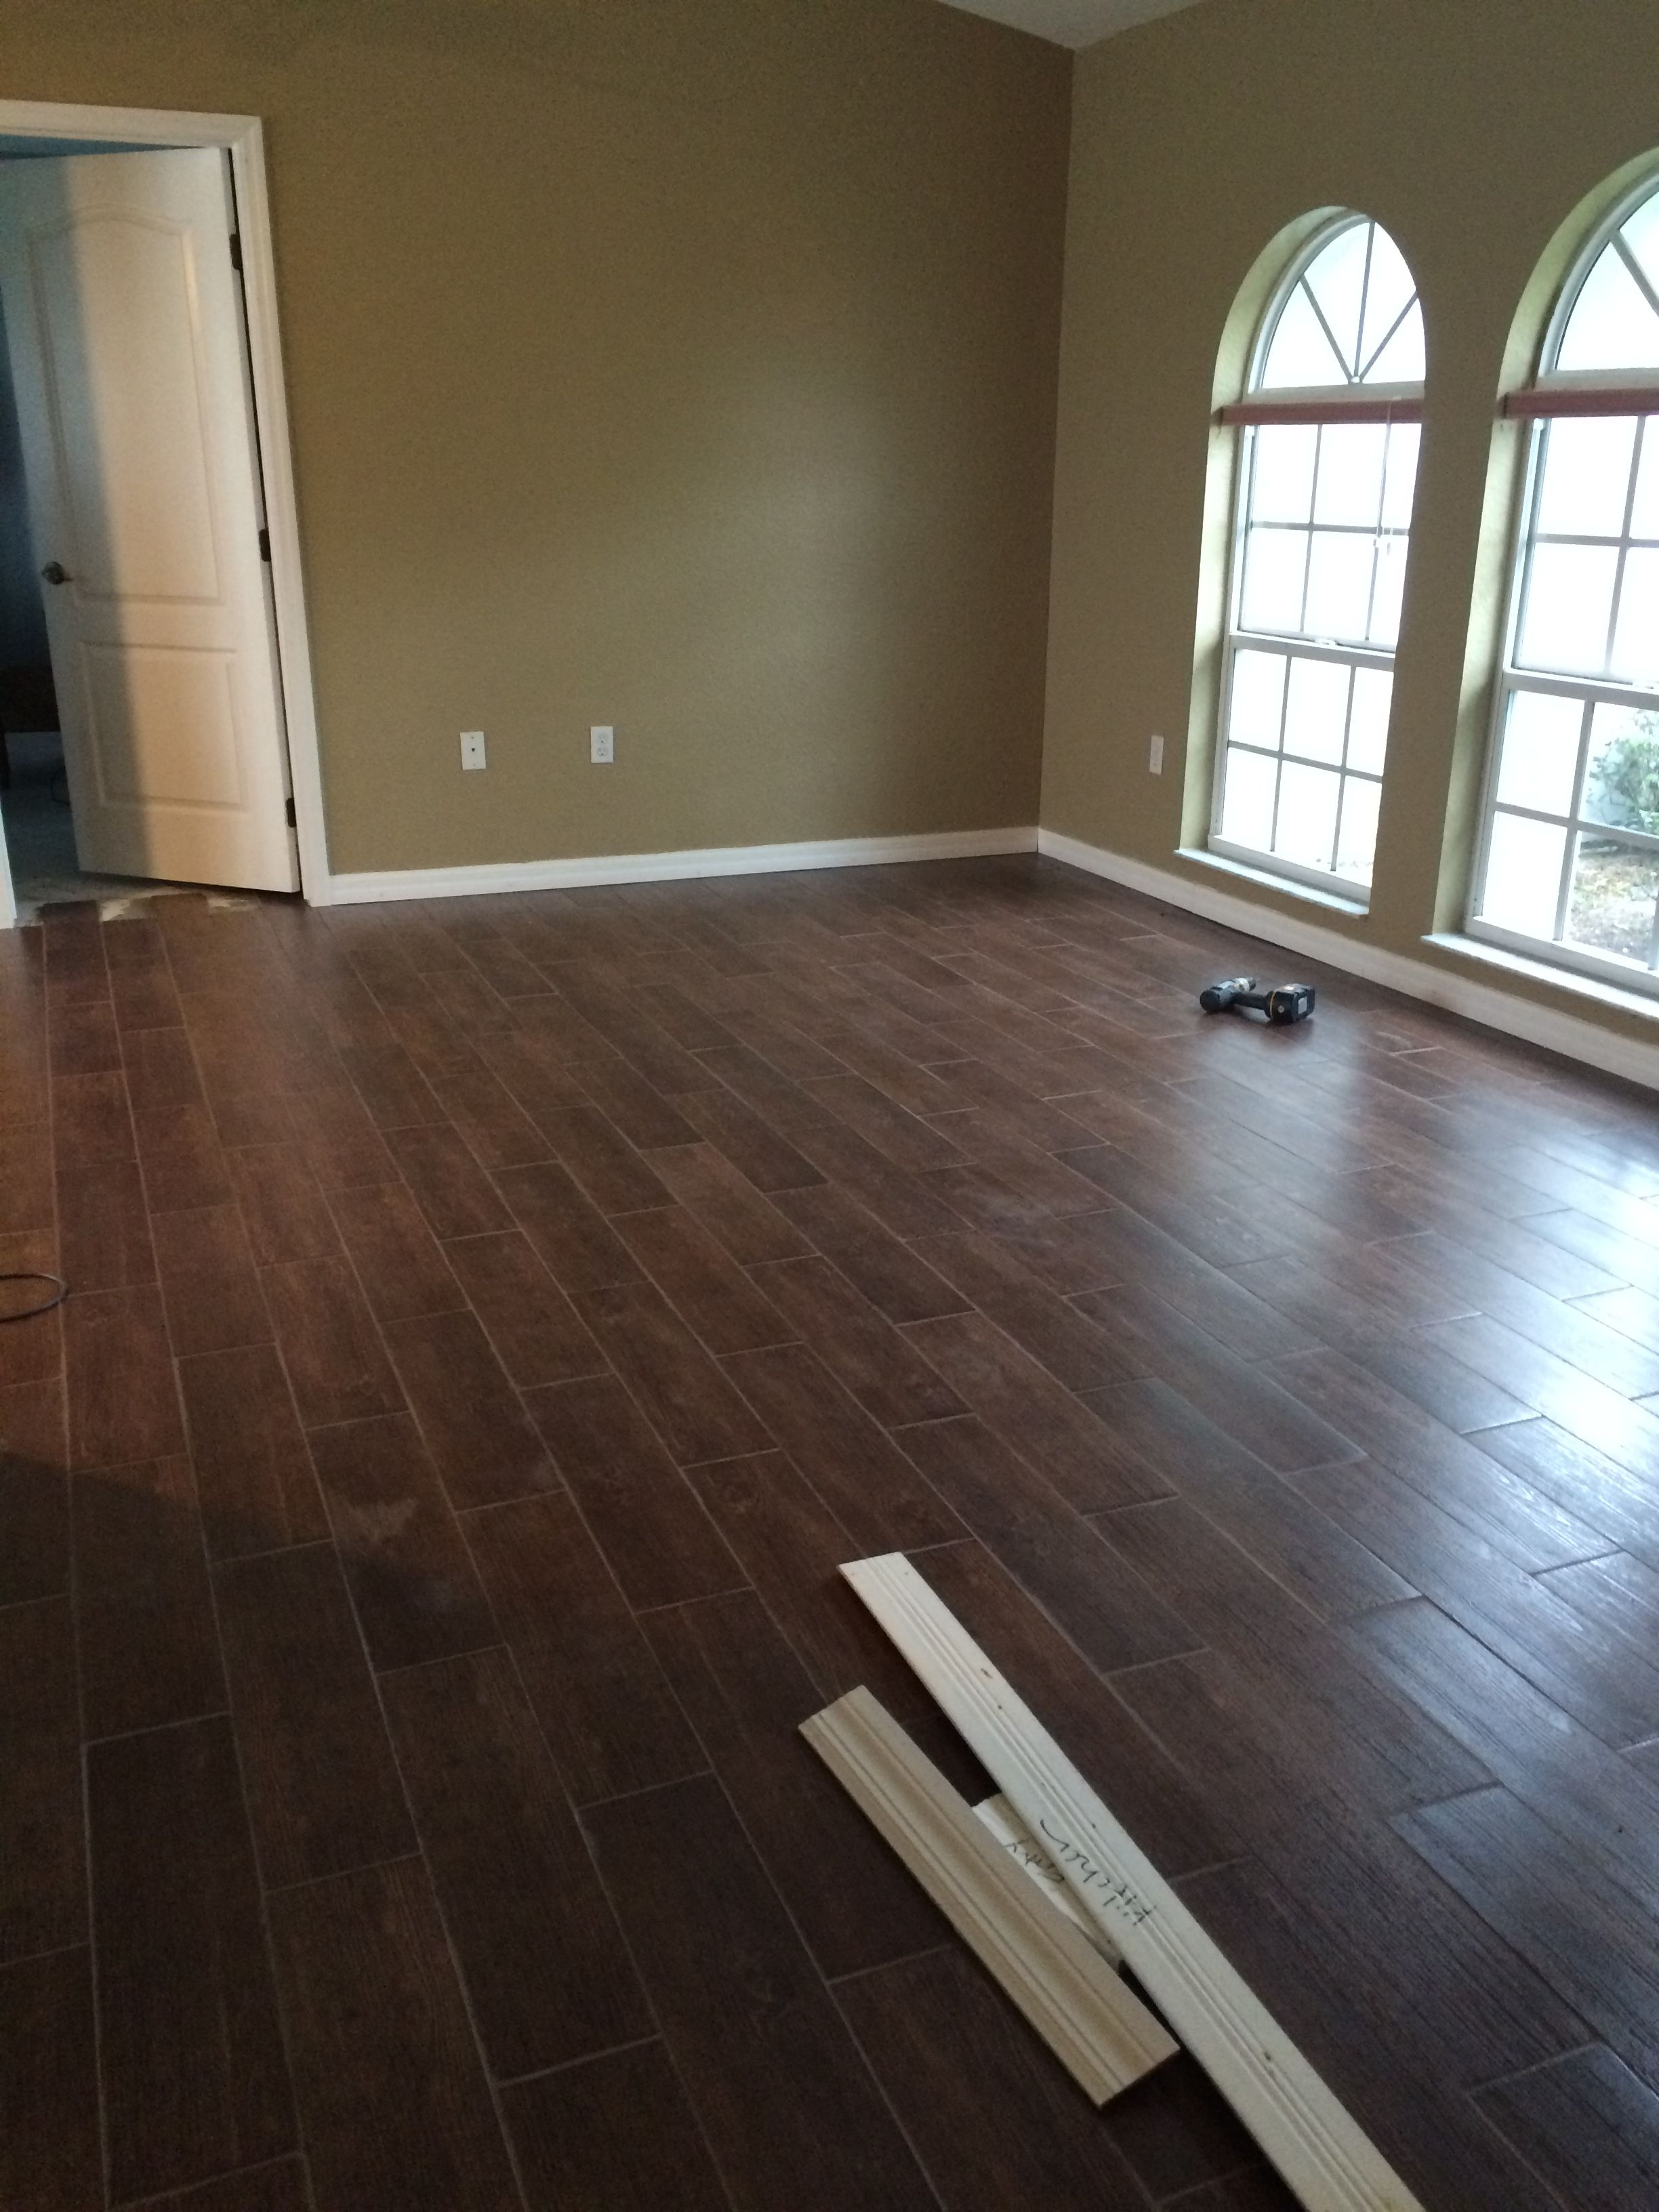 Ceramic tile that looks like hardwood | House flooring ...